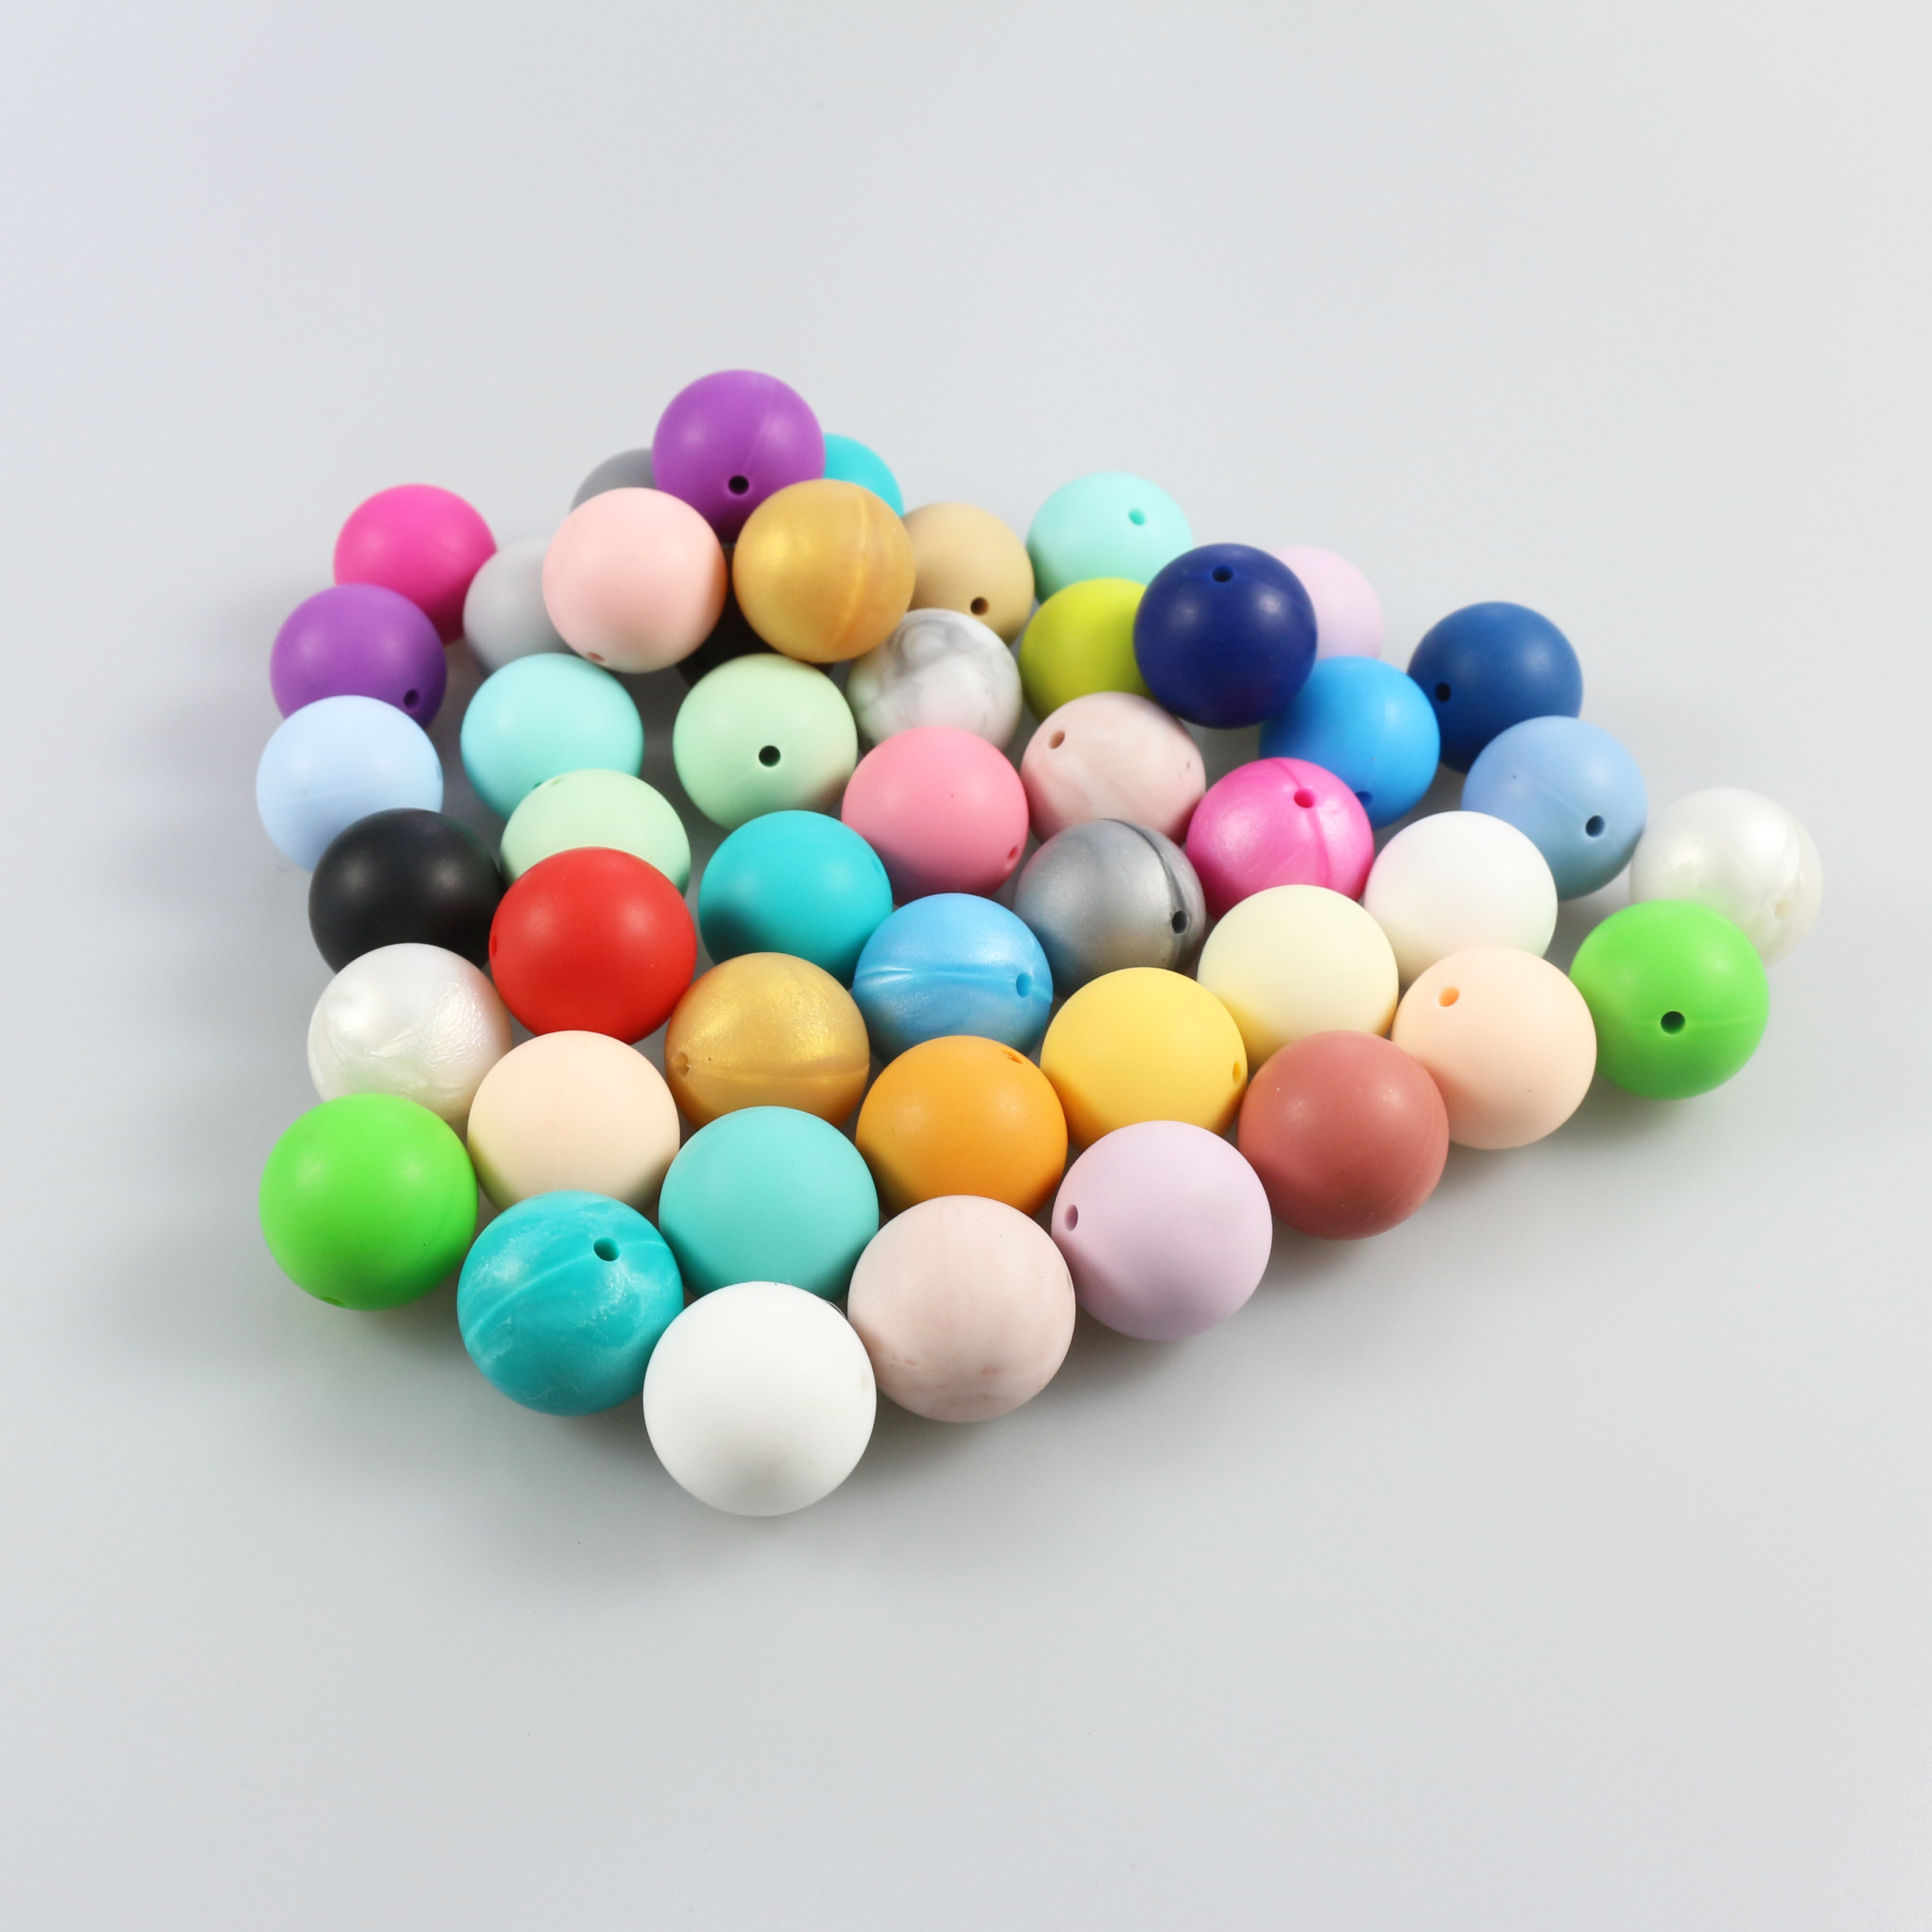 Silicone Beads Wholesale 15mm Emerald Silicone Beads Silicone Beads Silicone Beads